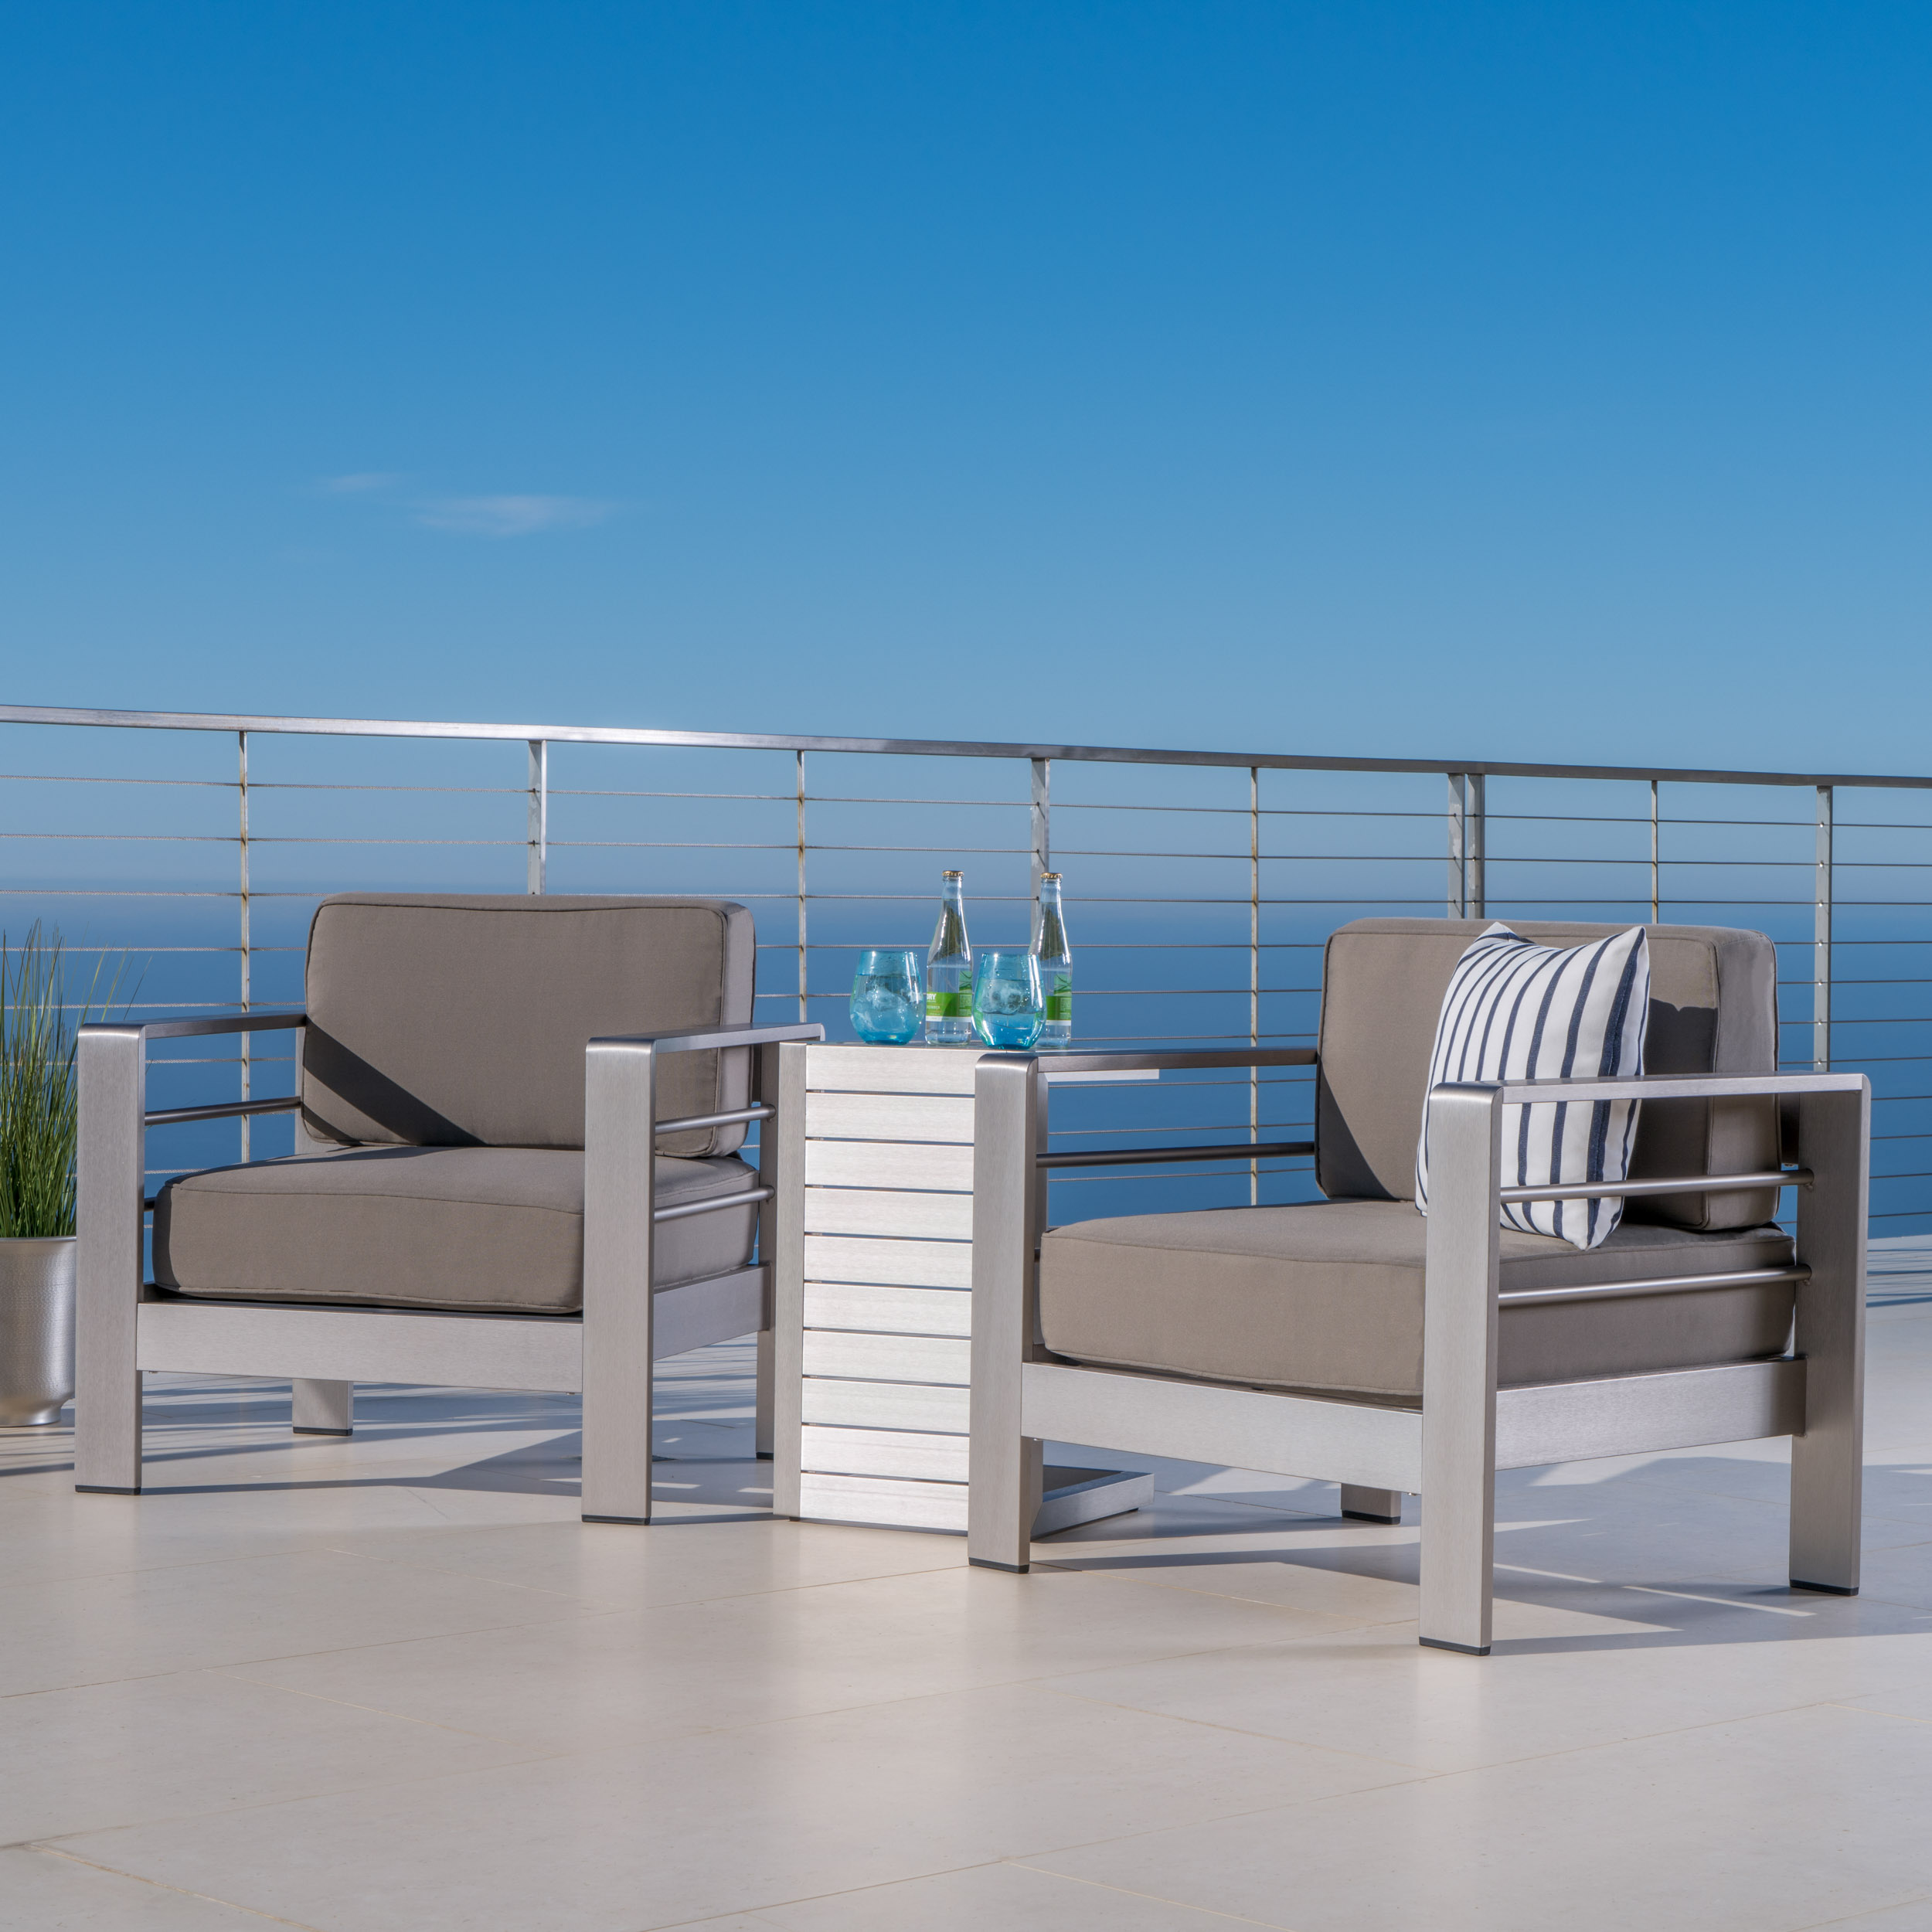 Miller Outdoor Aluminum Club Chairs with Side Table, Khaki, Silver